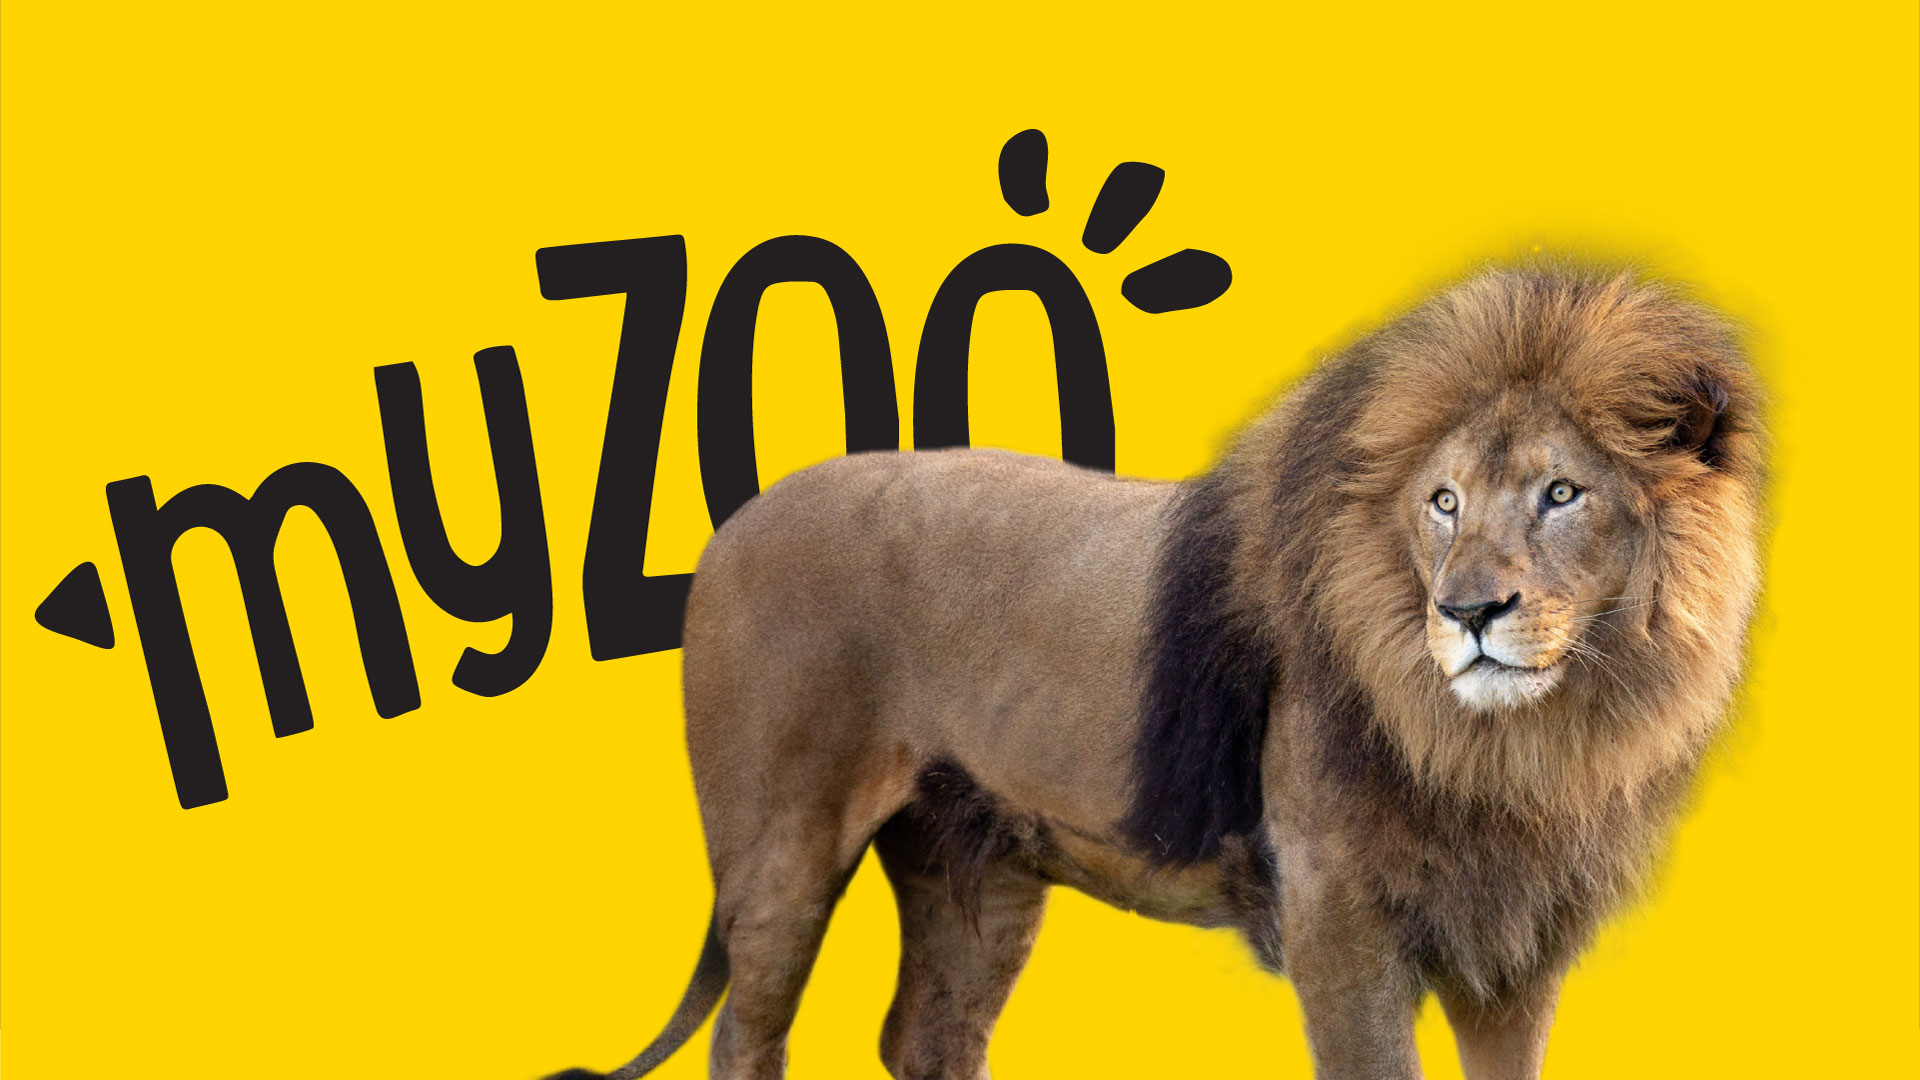 https://rfacdn.nz/zoo/assets/media/azoo-myzoo-lion.jpg